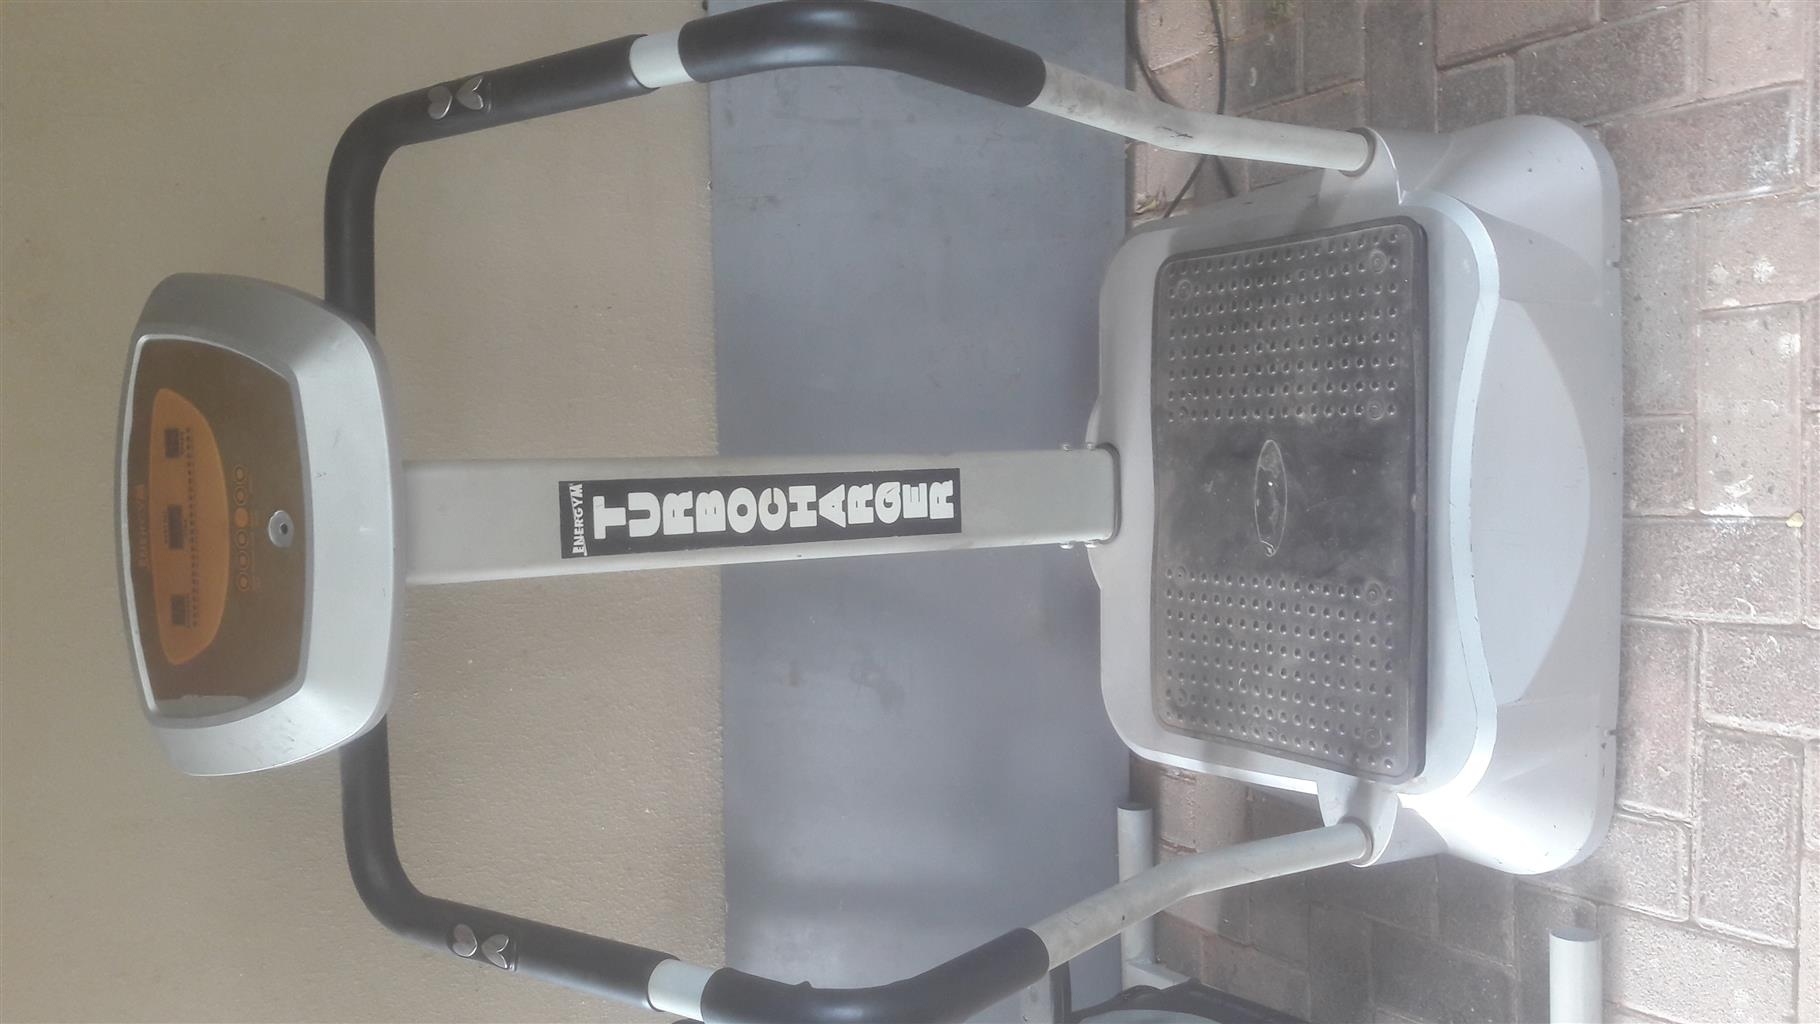 Energym fat burner and exercise bike to swap